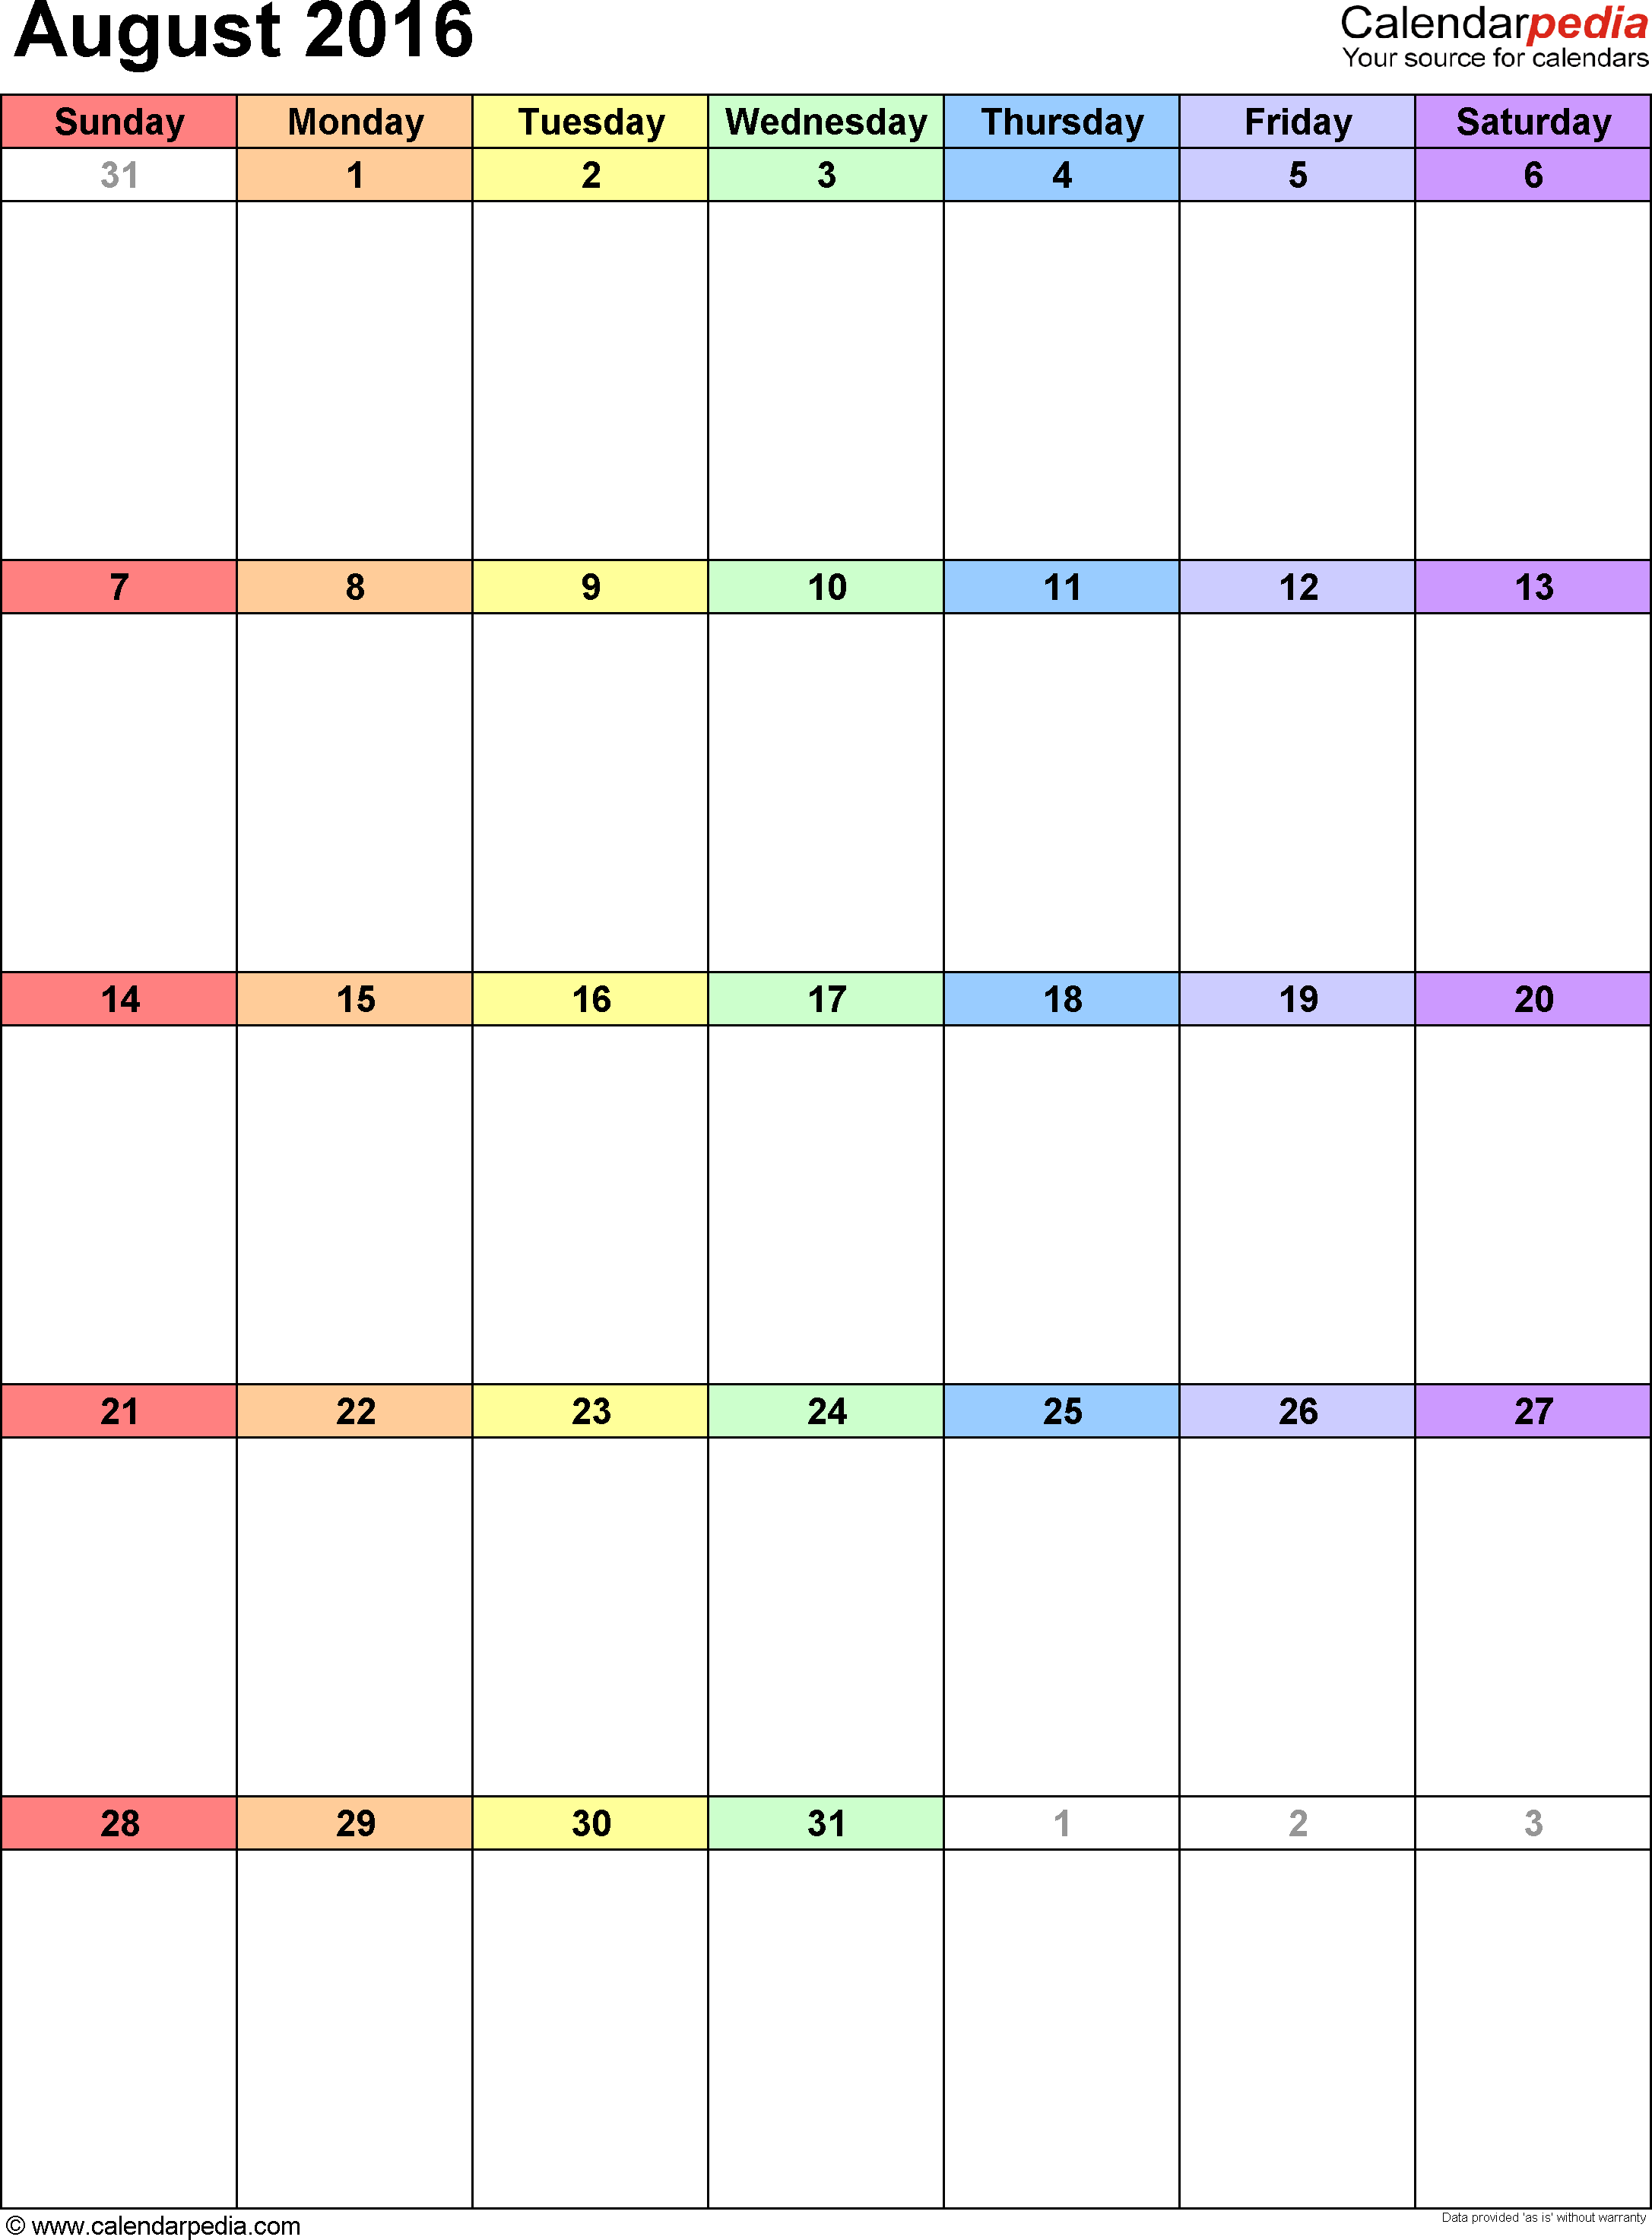 August 2016 calendar as printable Word, Excel & PDF templates